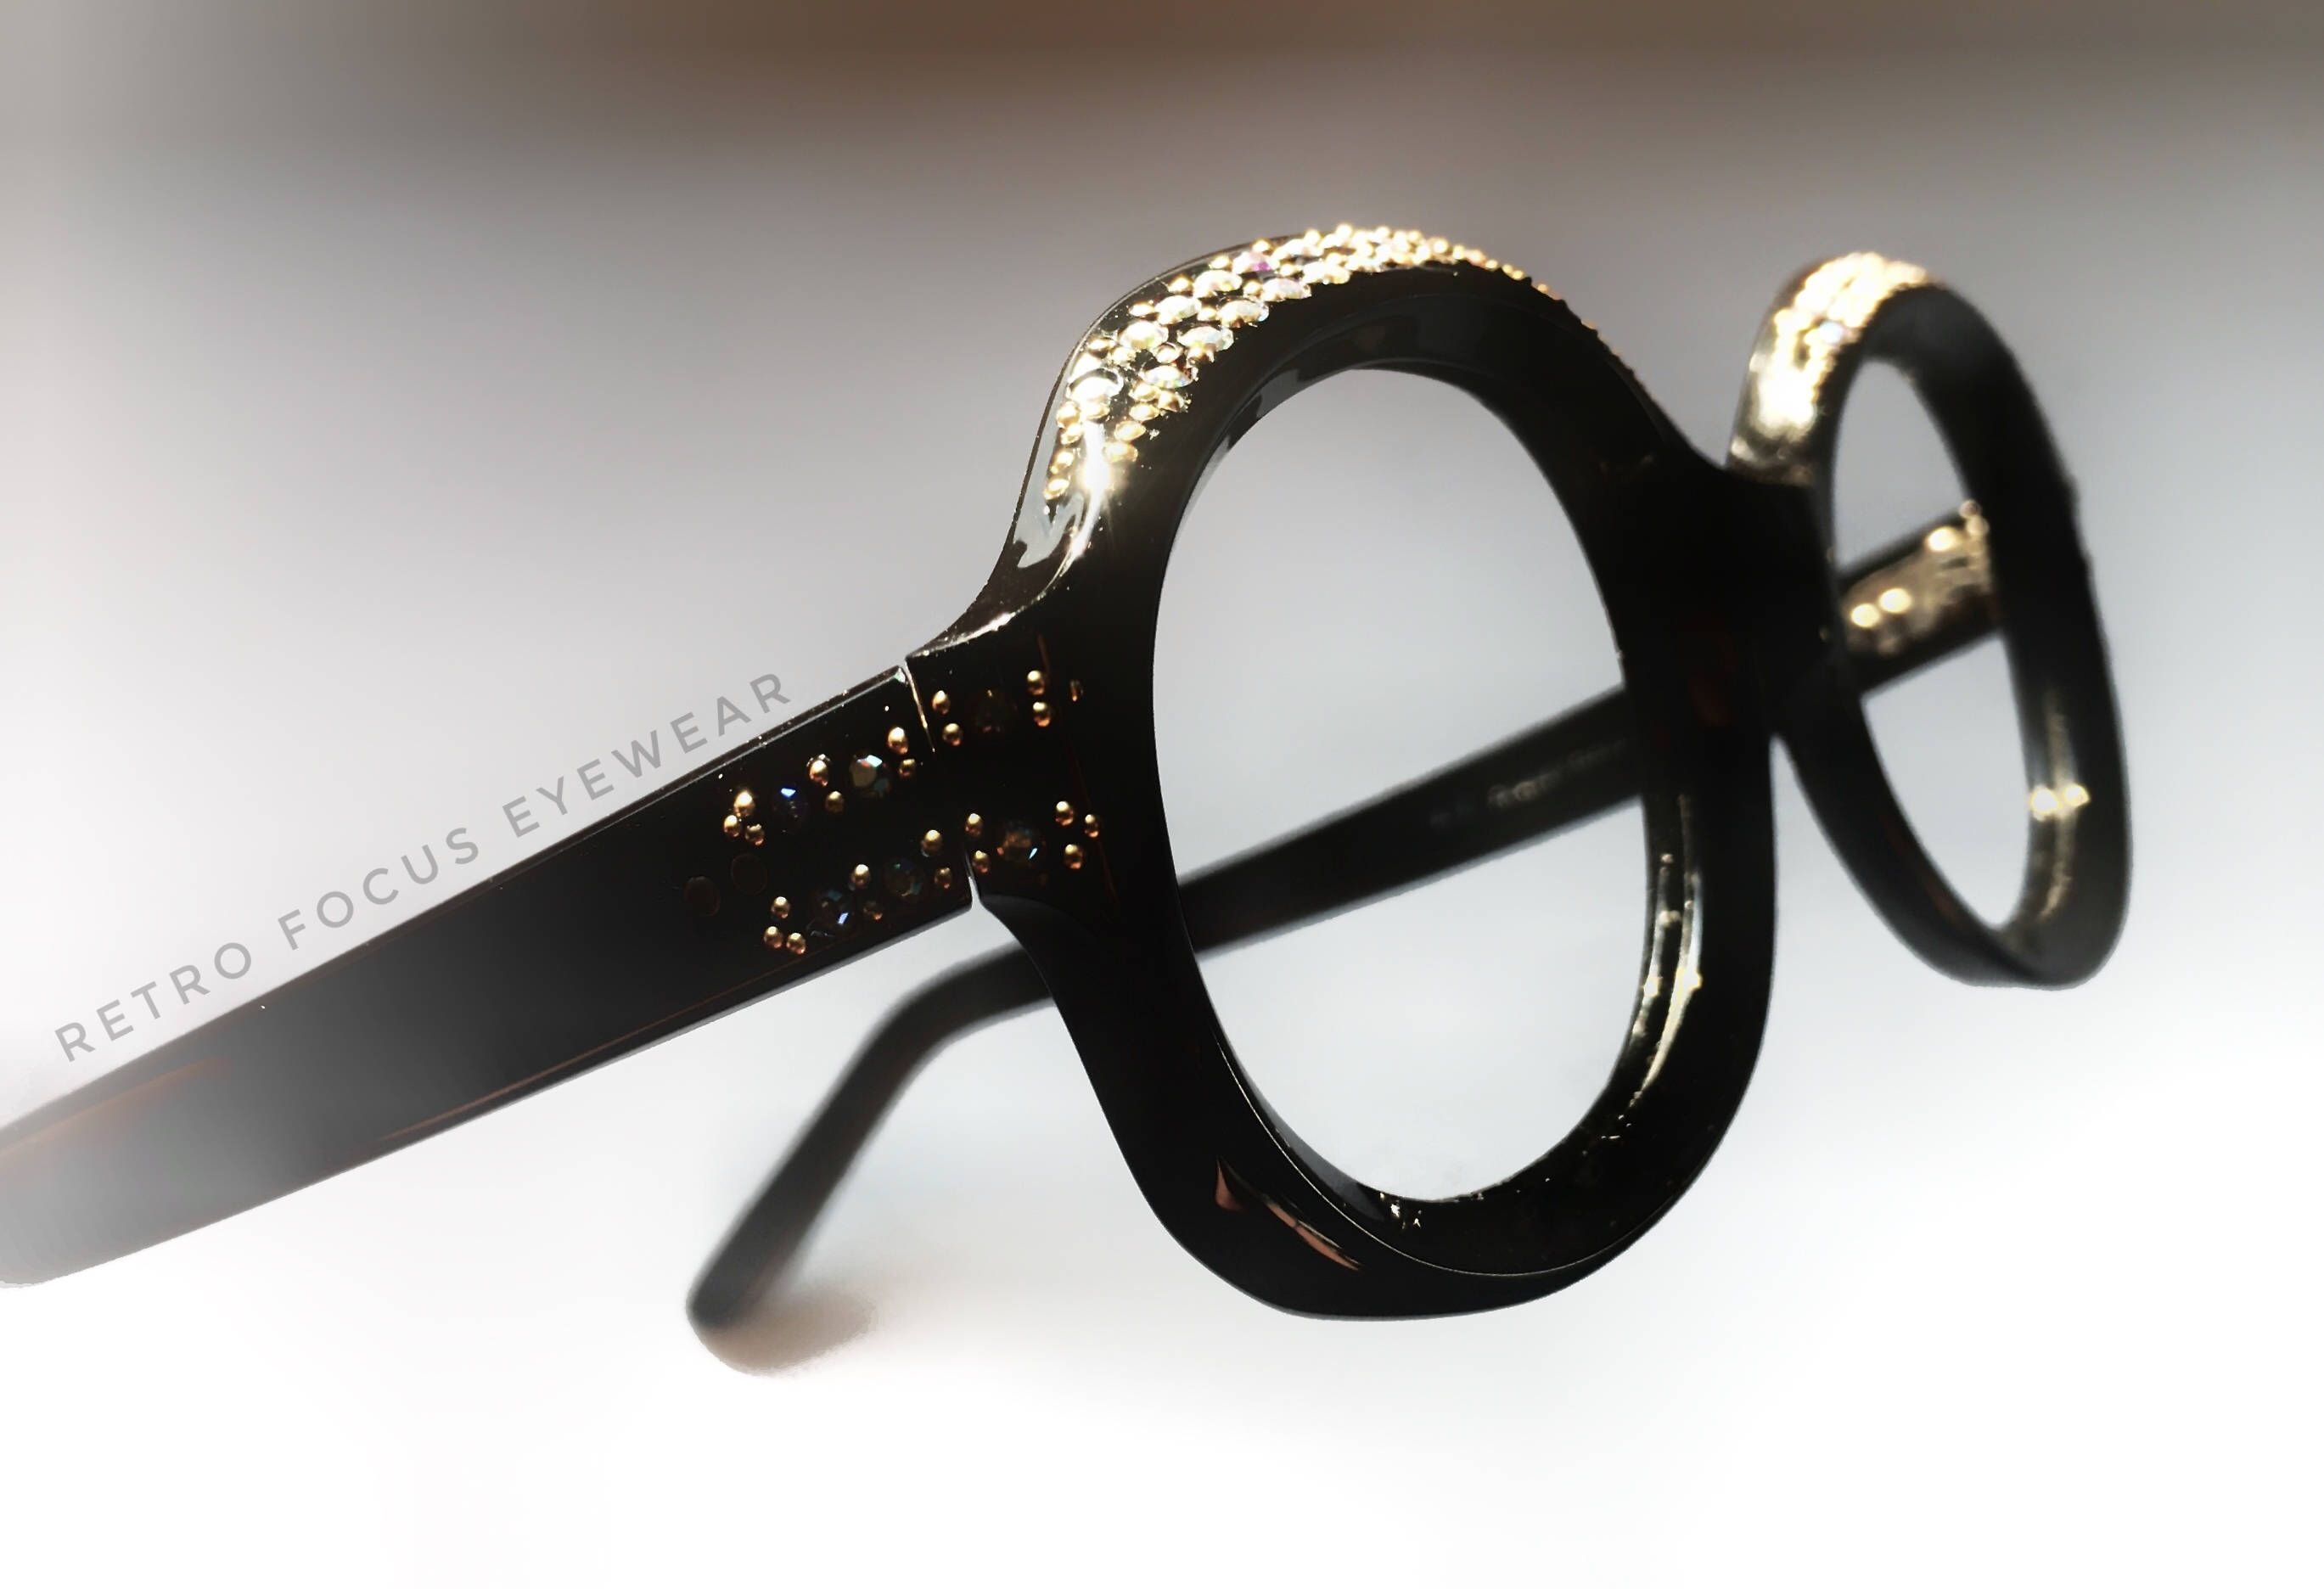 bbf6131c3c French 1960 s Rhinestone Brow Vintage Black Oval Thick Eyeglass Frames  Prescription Glasses Eyewear France Eccentric Unique